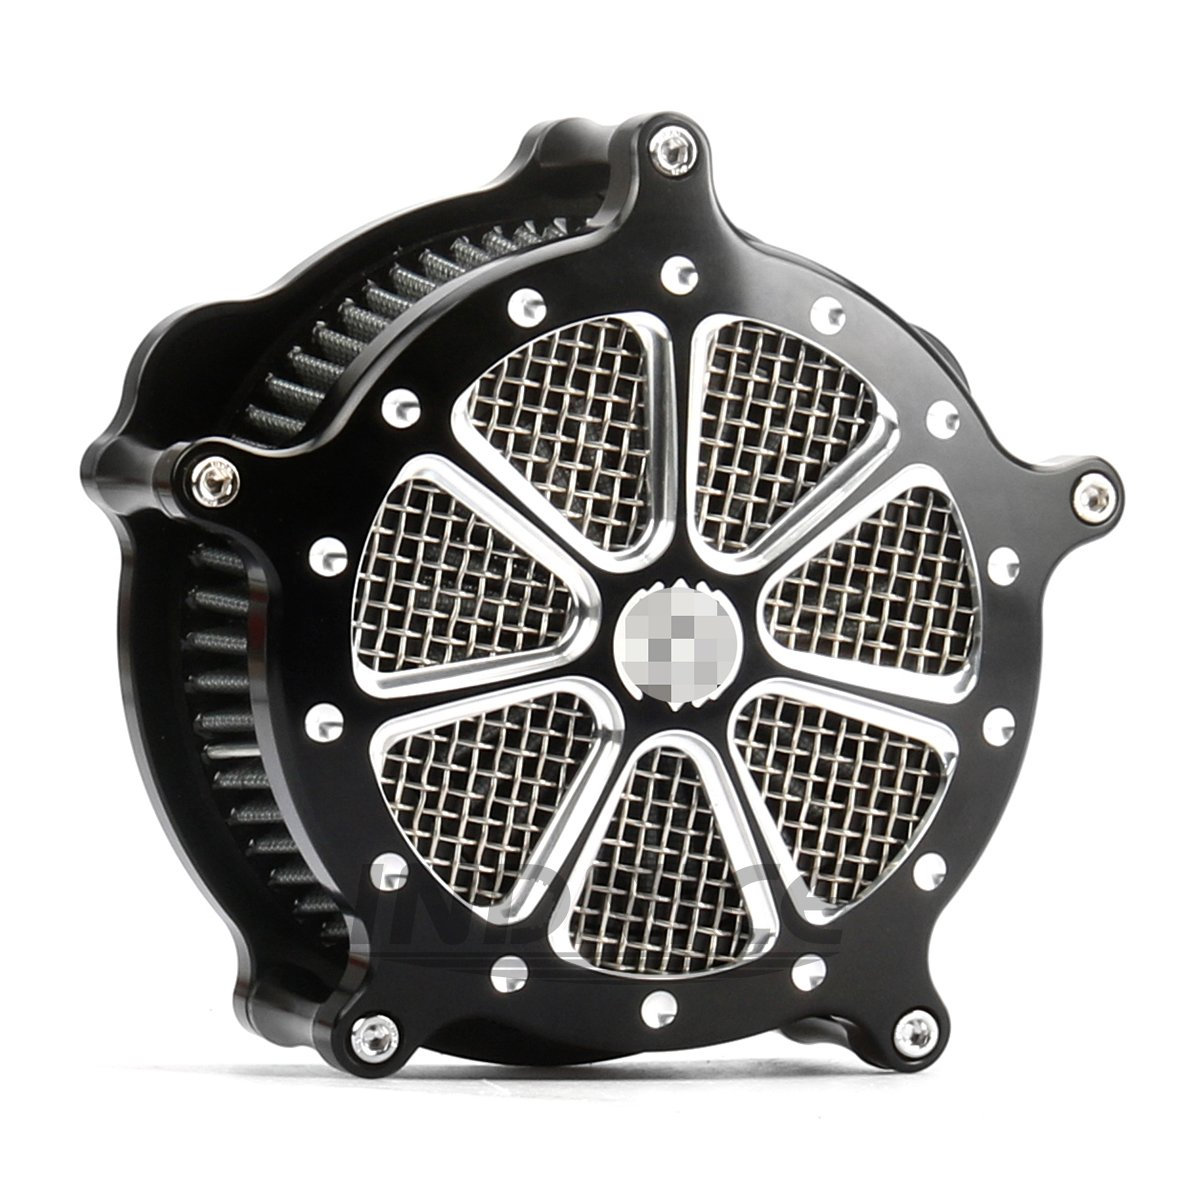 CNC deep cut harley Air Cleaner seventy two air filter harley air intake system For Harley Sportster 883 XL1200 Iron 883 air filter